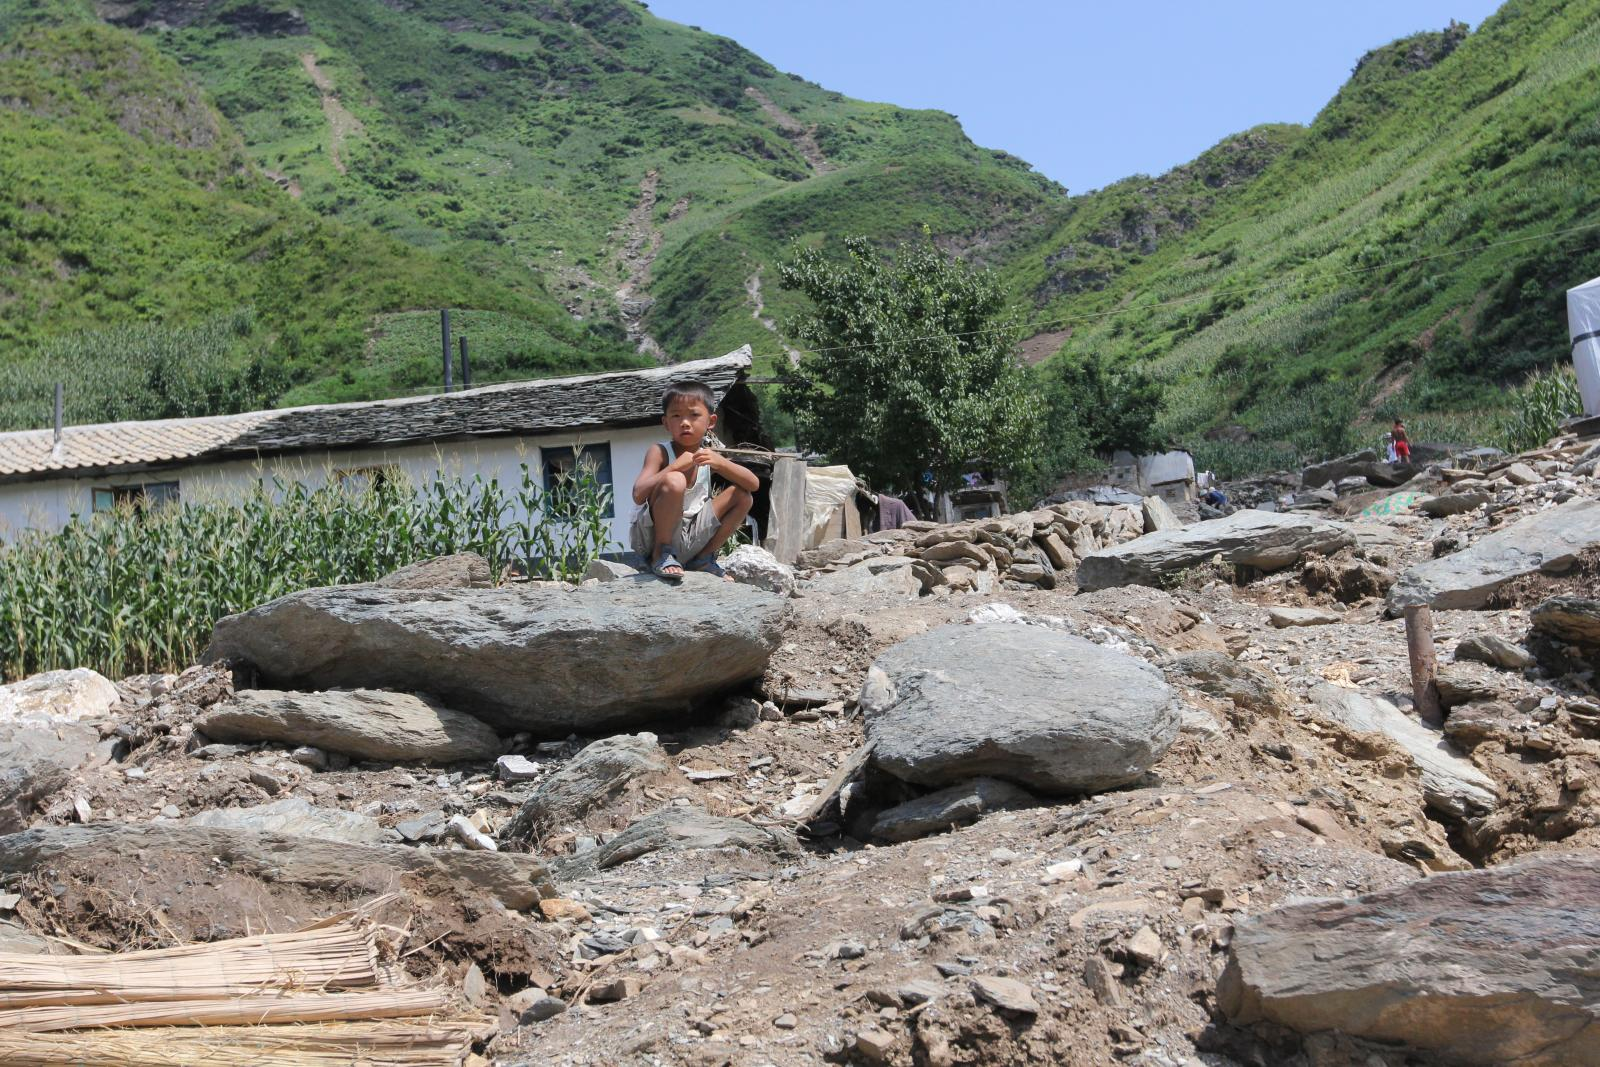 SONGCHON, North Korea _ A boy sits atop rubble left when flooding triggered a landslide that destroyed his village in Anju County, North Korea, in the summer of 2012. Photo by Jean H. Lee. All Rights Reserved.